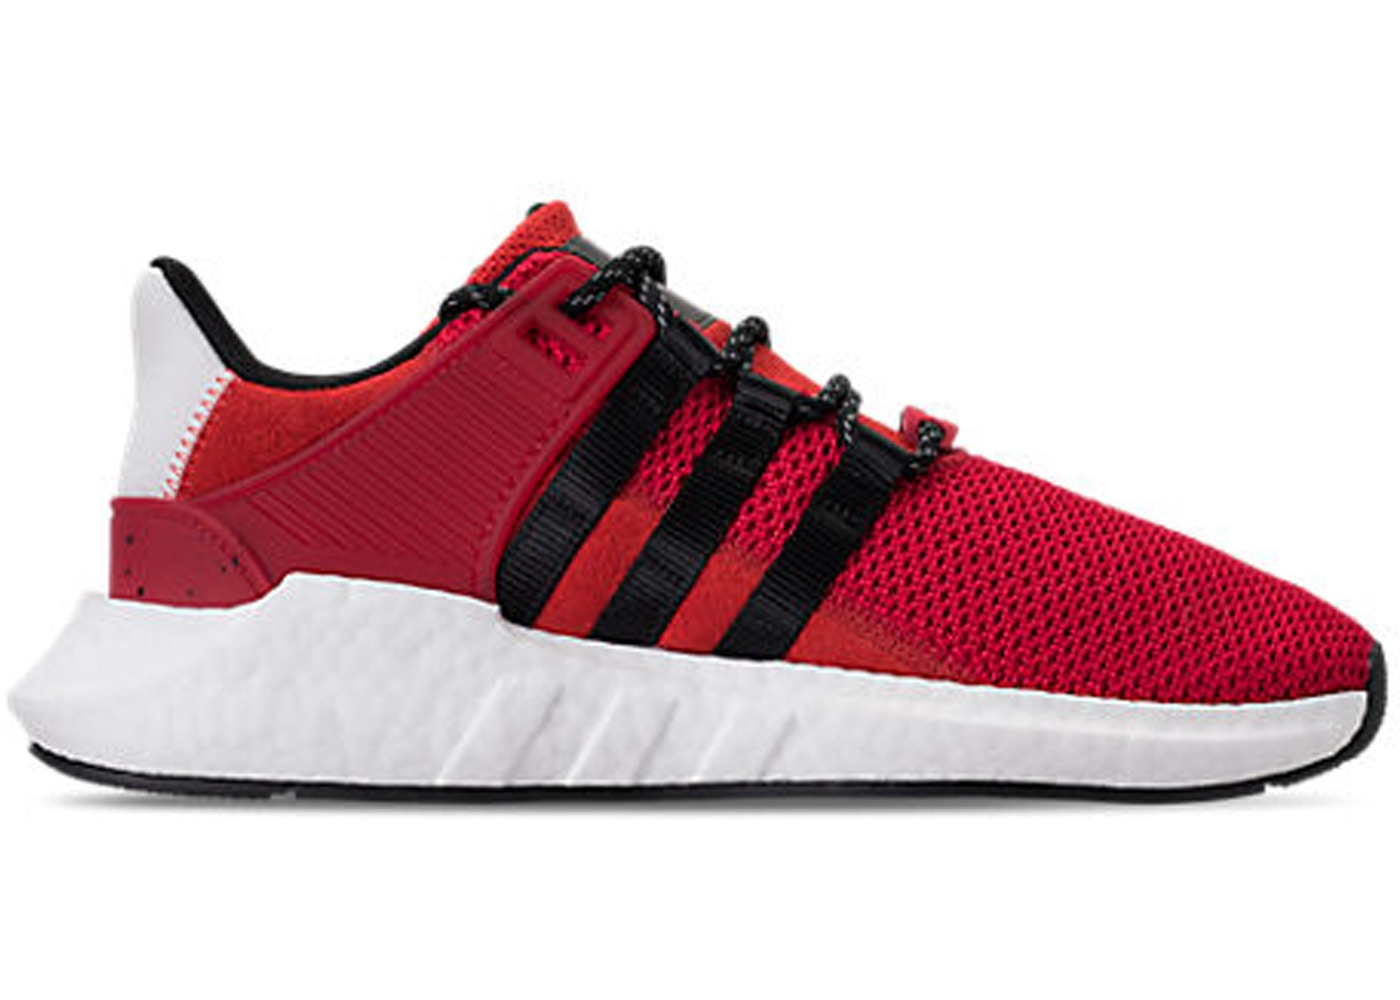 info for 54f4b cef3a adidas EQT Support 93/17 Scarlet Core Black